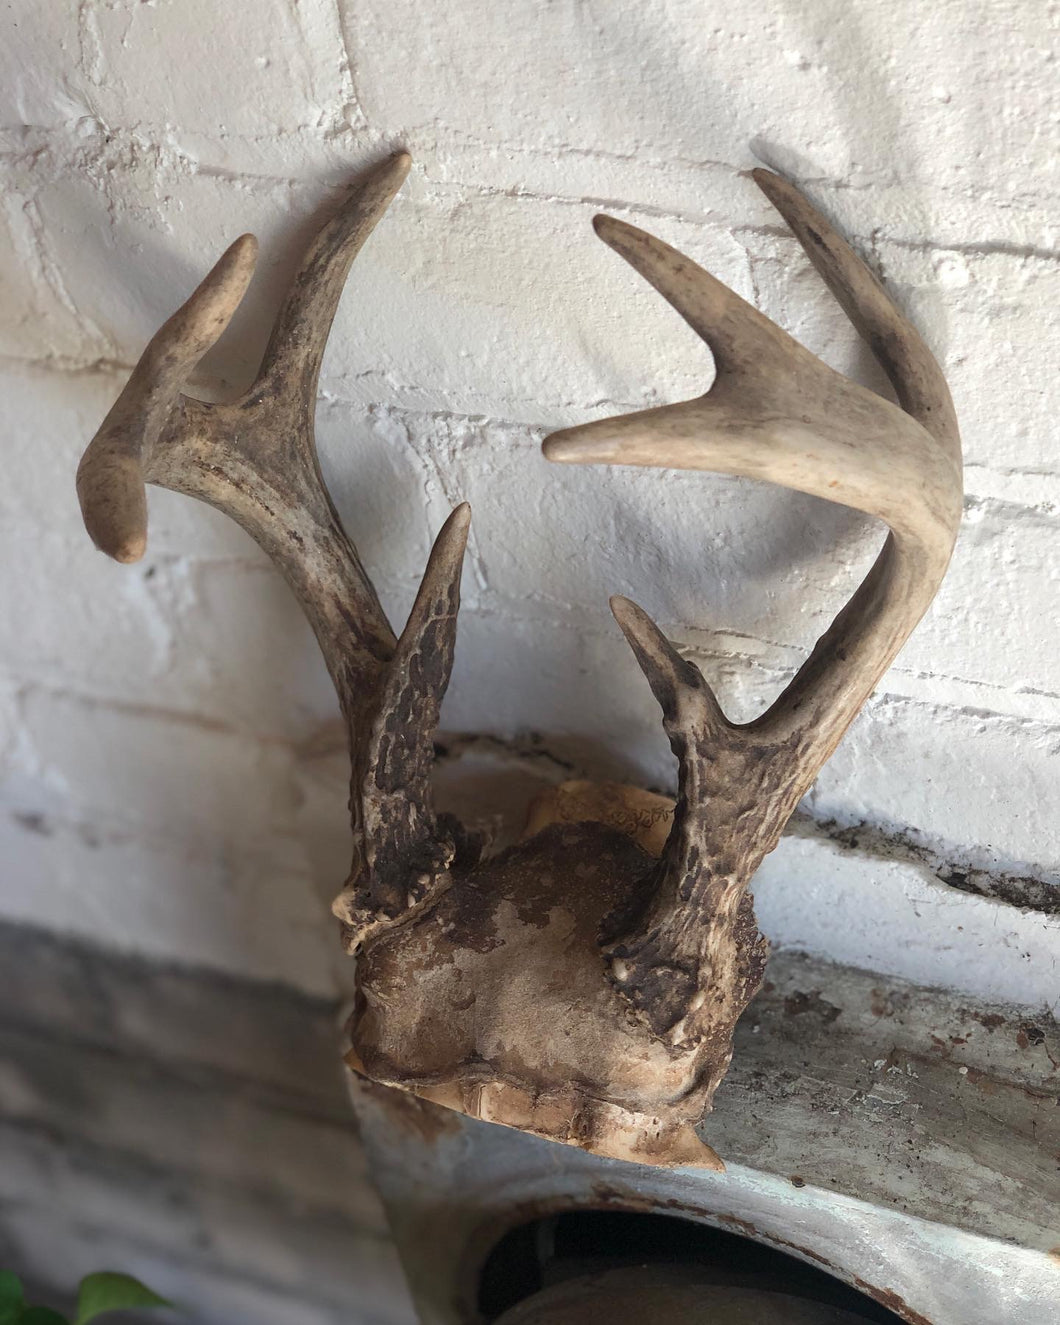 Medium-Sized Antlers